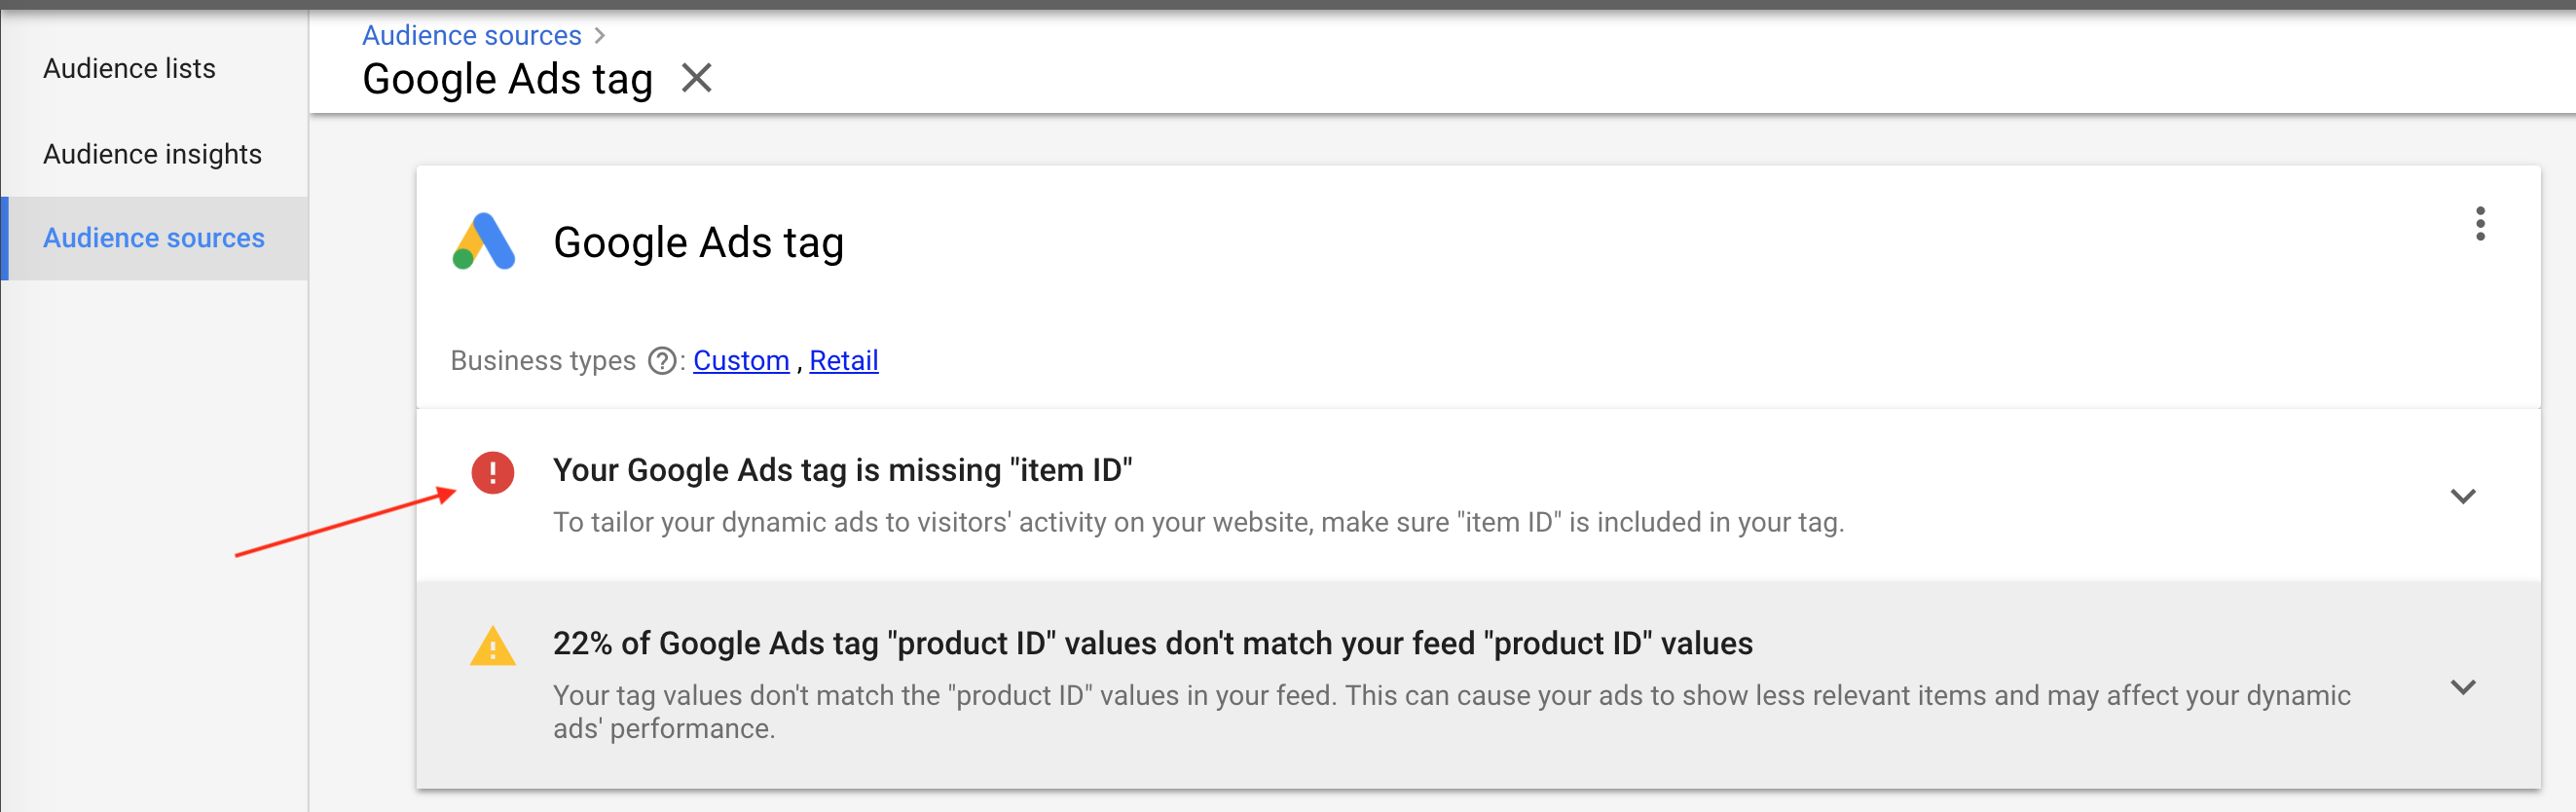 """22% Google Ads Tag """"product ID"""" values don't match your feed """"product ID"""" values"""